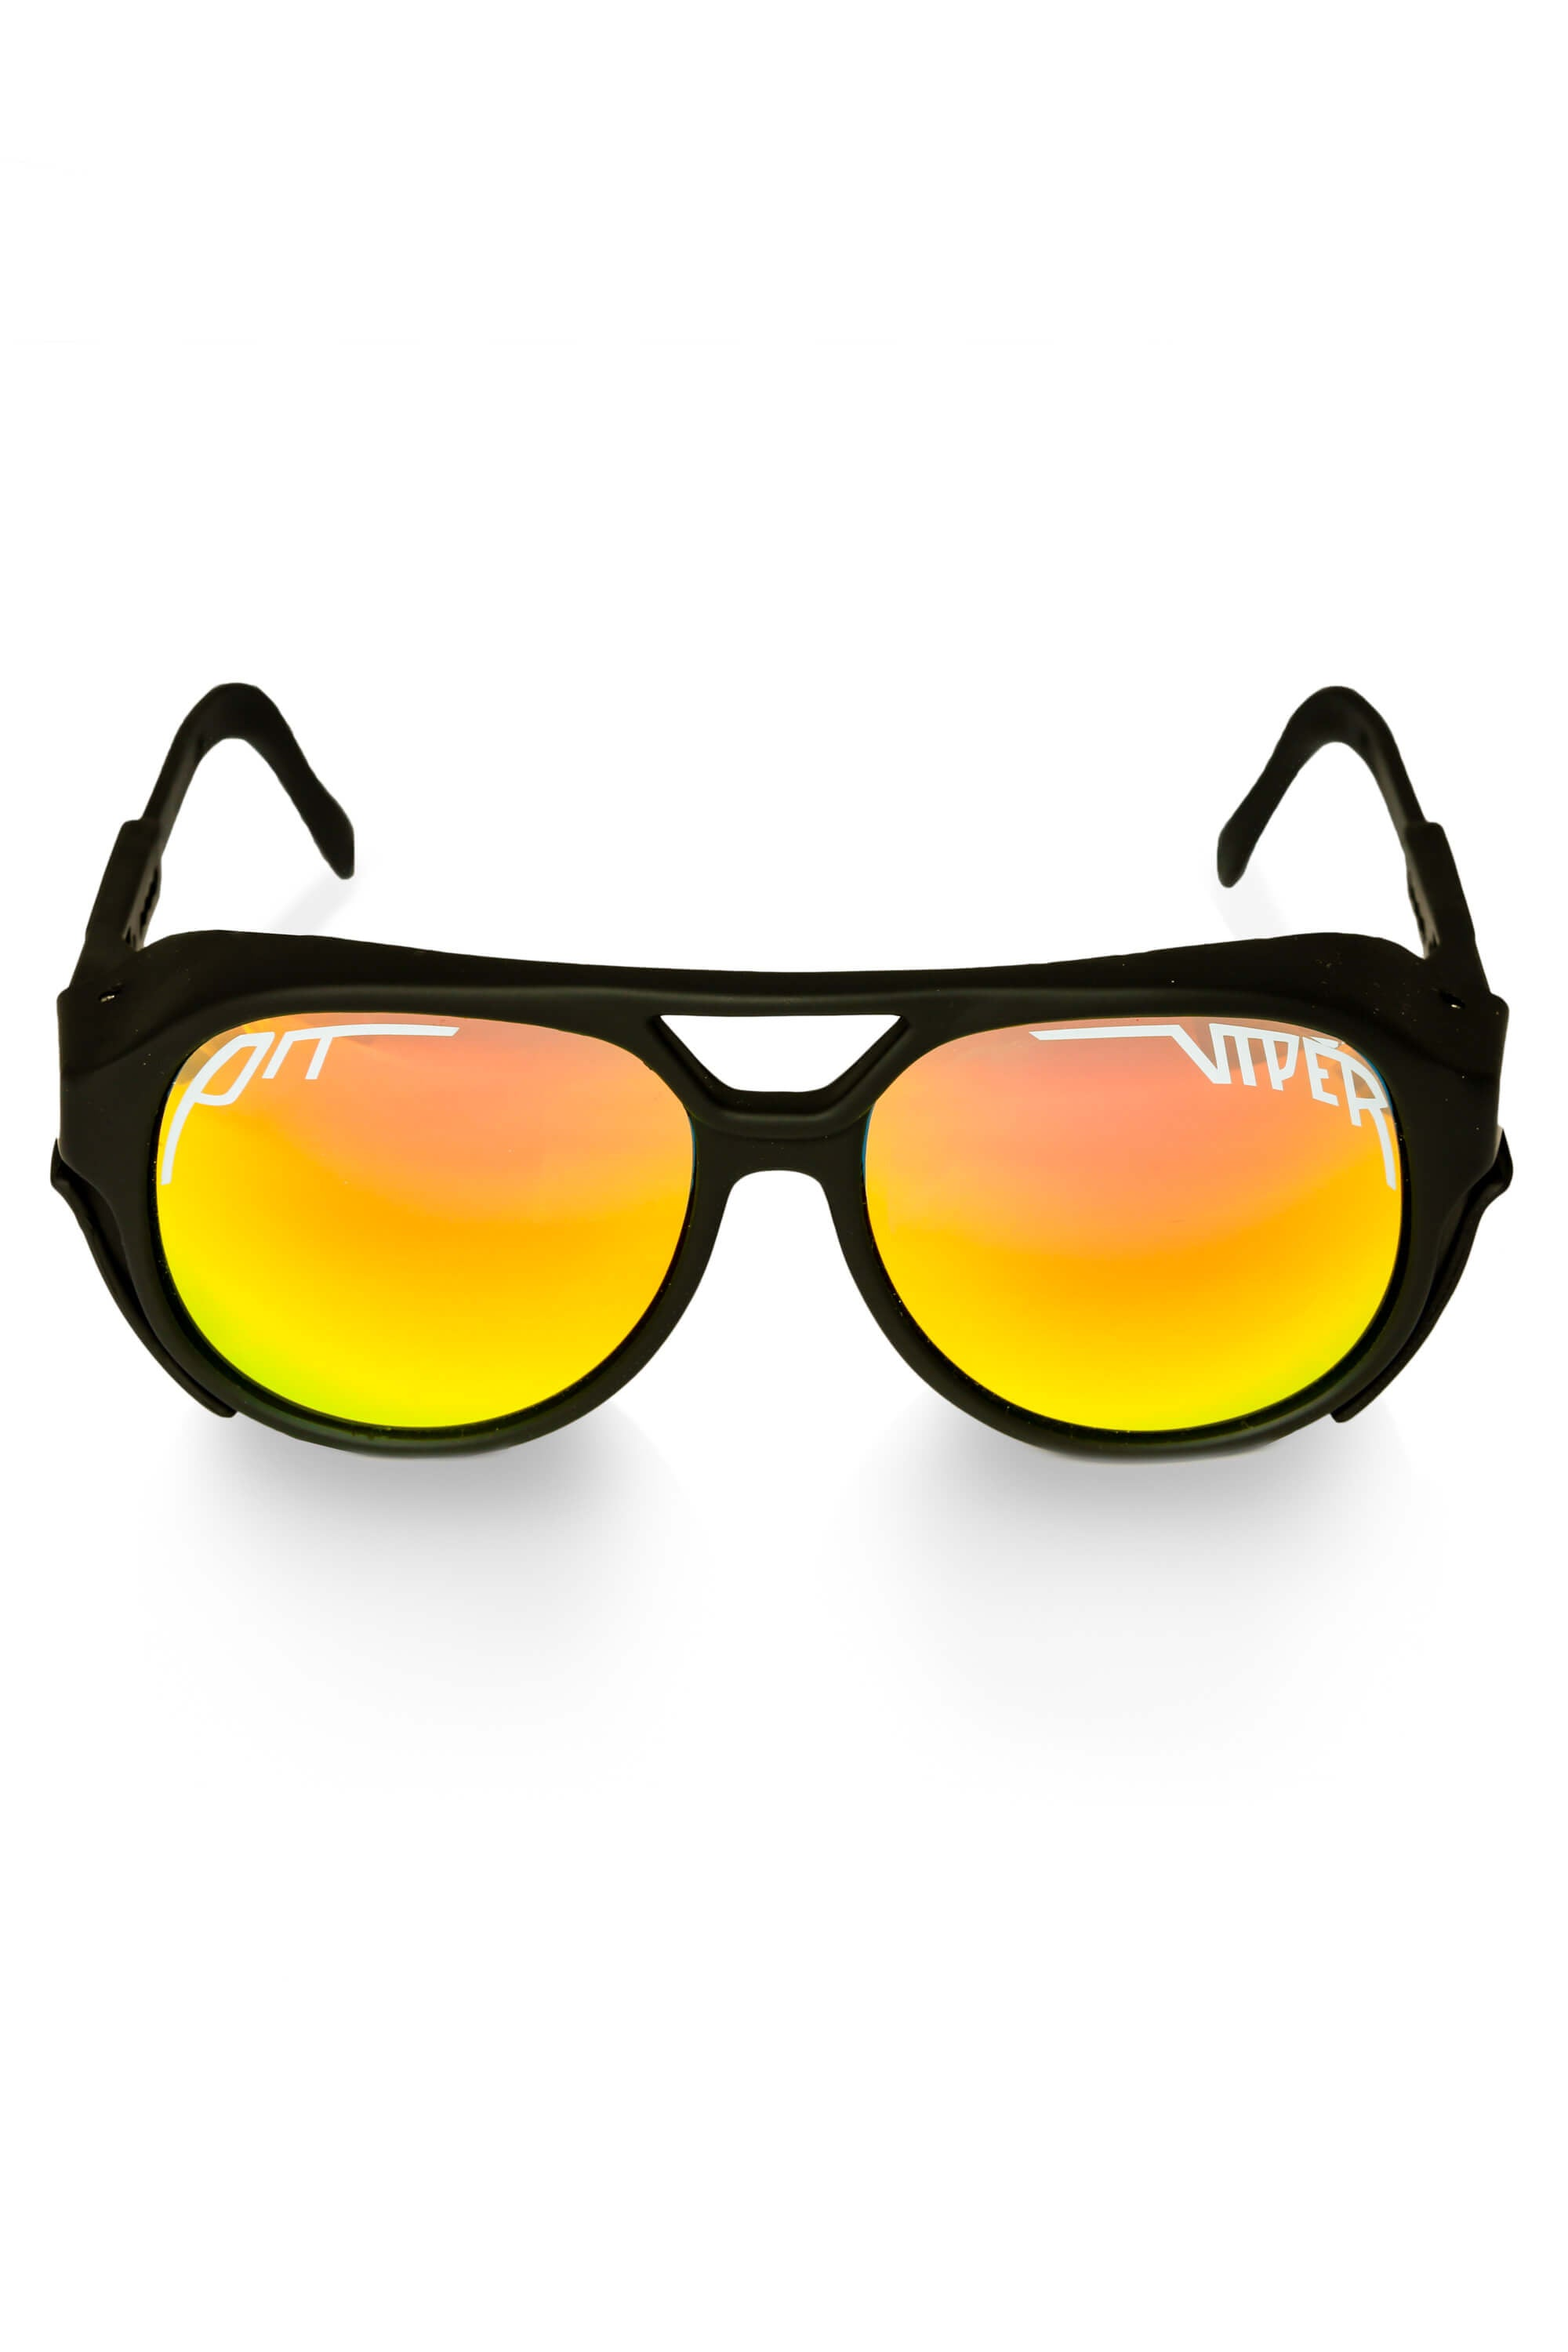 Black Mirrored Pit Viper Exciter Sunglasses   The Rubbers